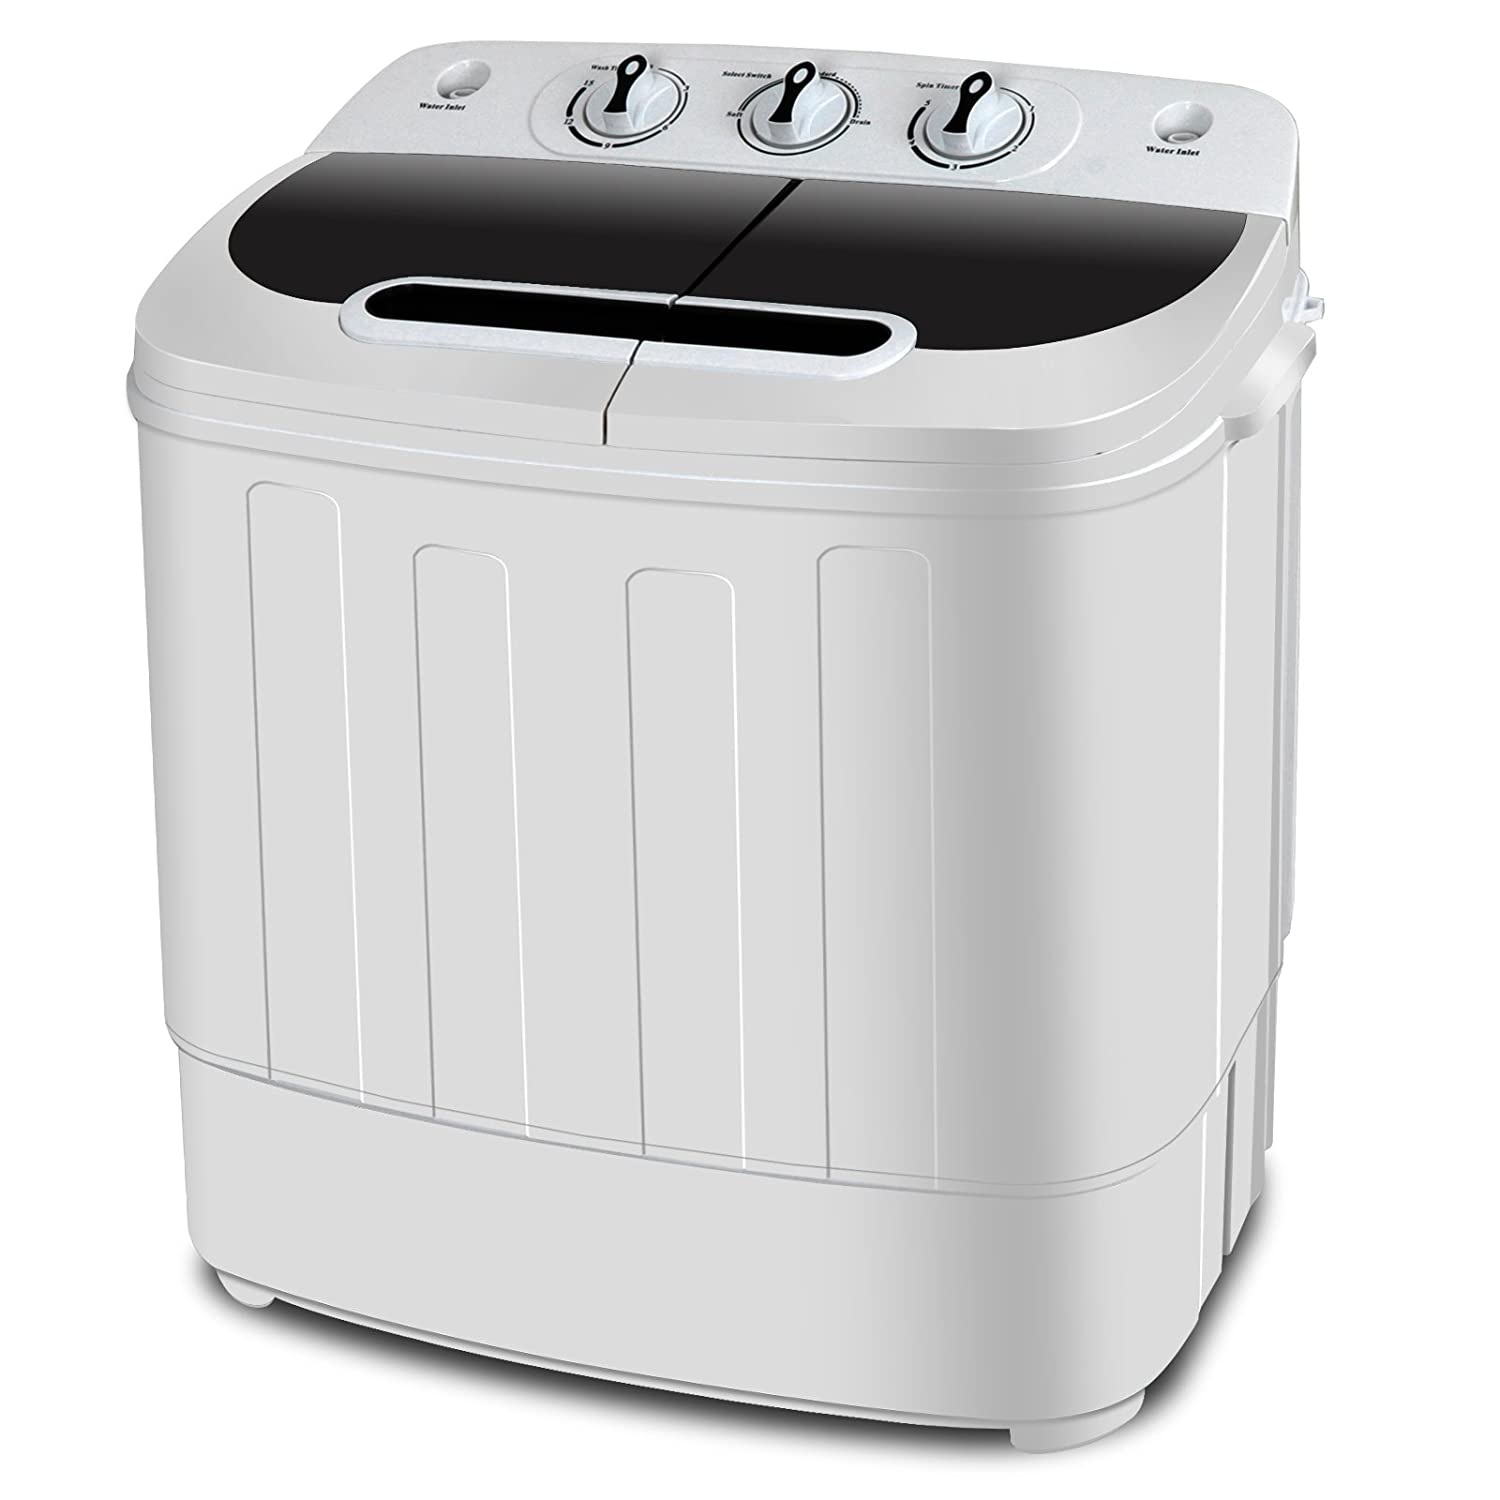 SUPER DEAL Portable Washer Mini Twin Tub Washing Machine w/Washer&Spinner, Gravity Drain Pump, 13lbs Capacity For Camping, Apartments, Dorms, College Rooms, RV's, Delicates and more RV's